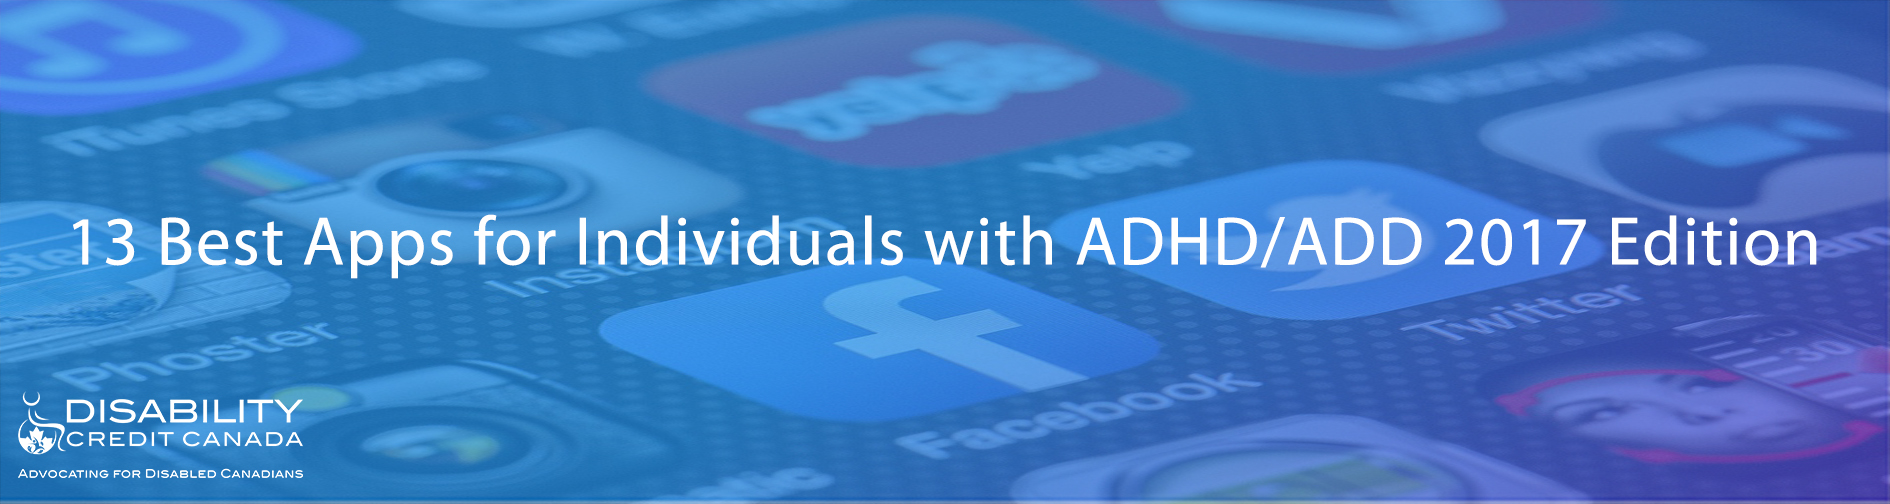 Apps for Individuals with ADHD/ADD